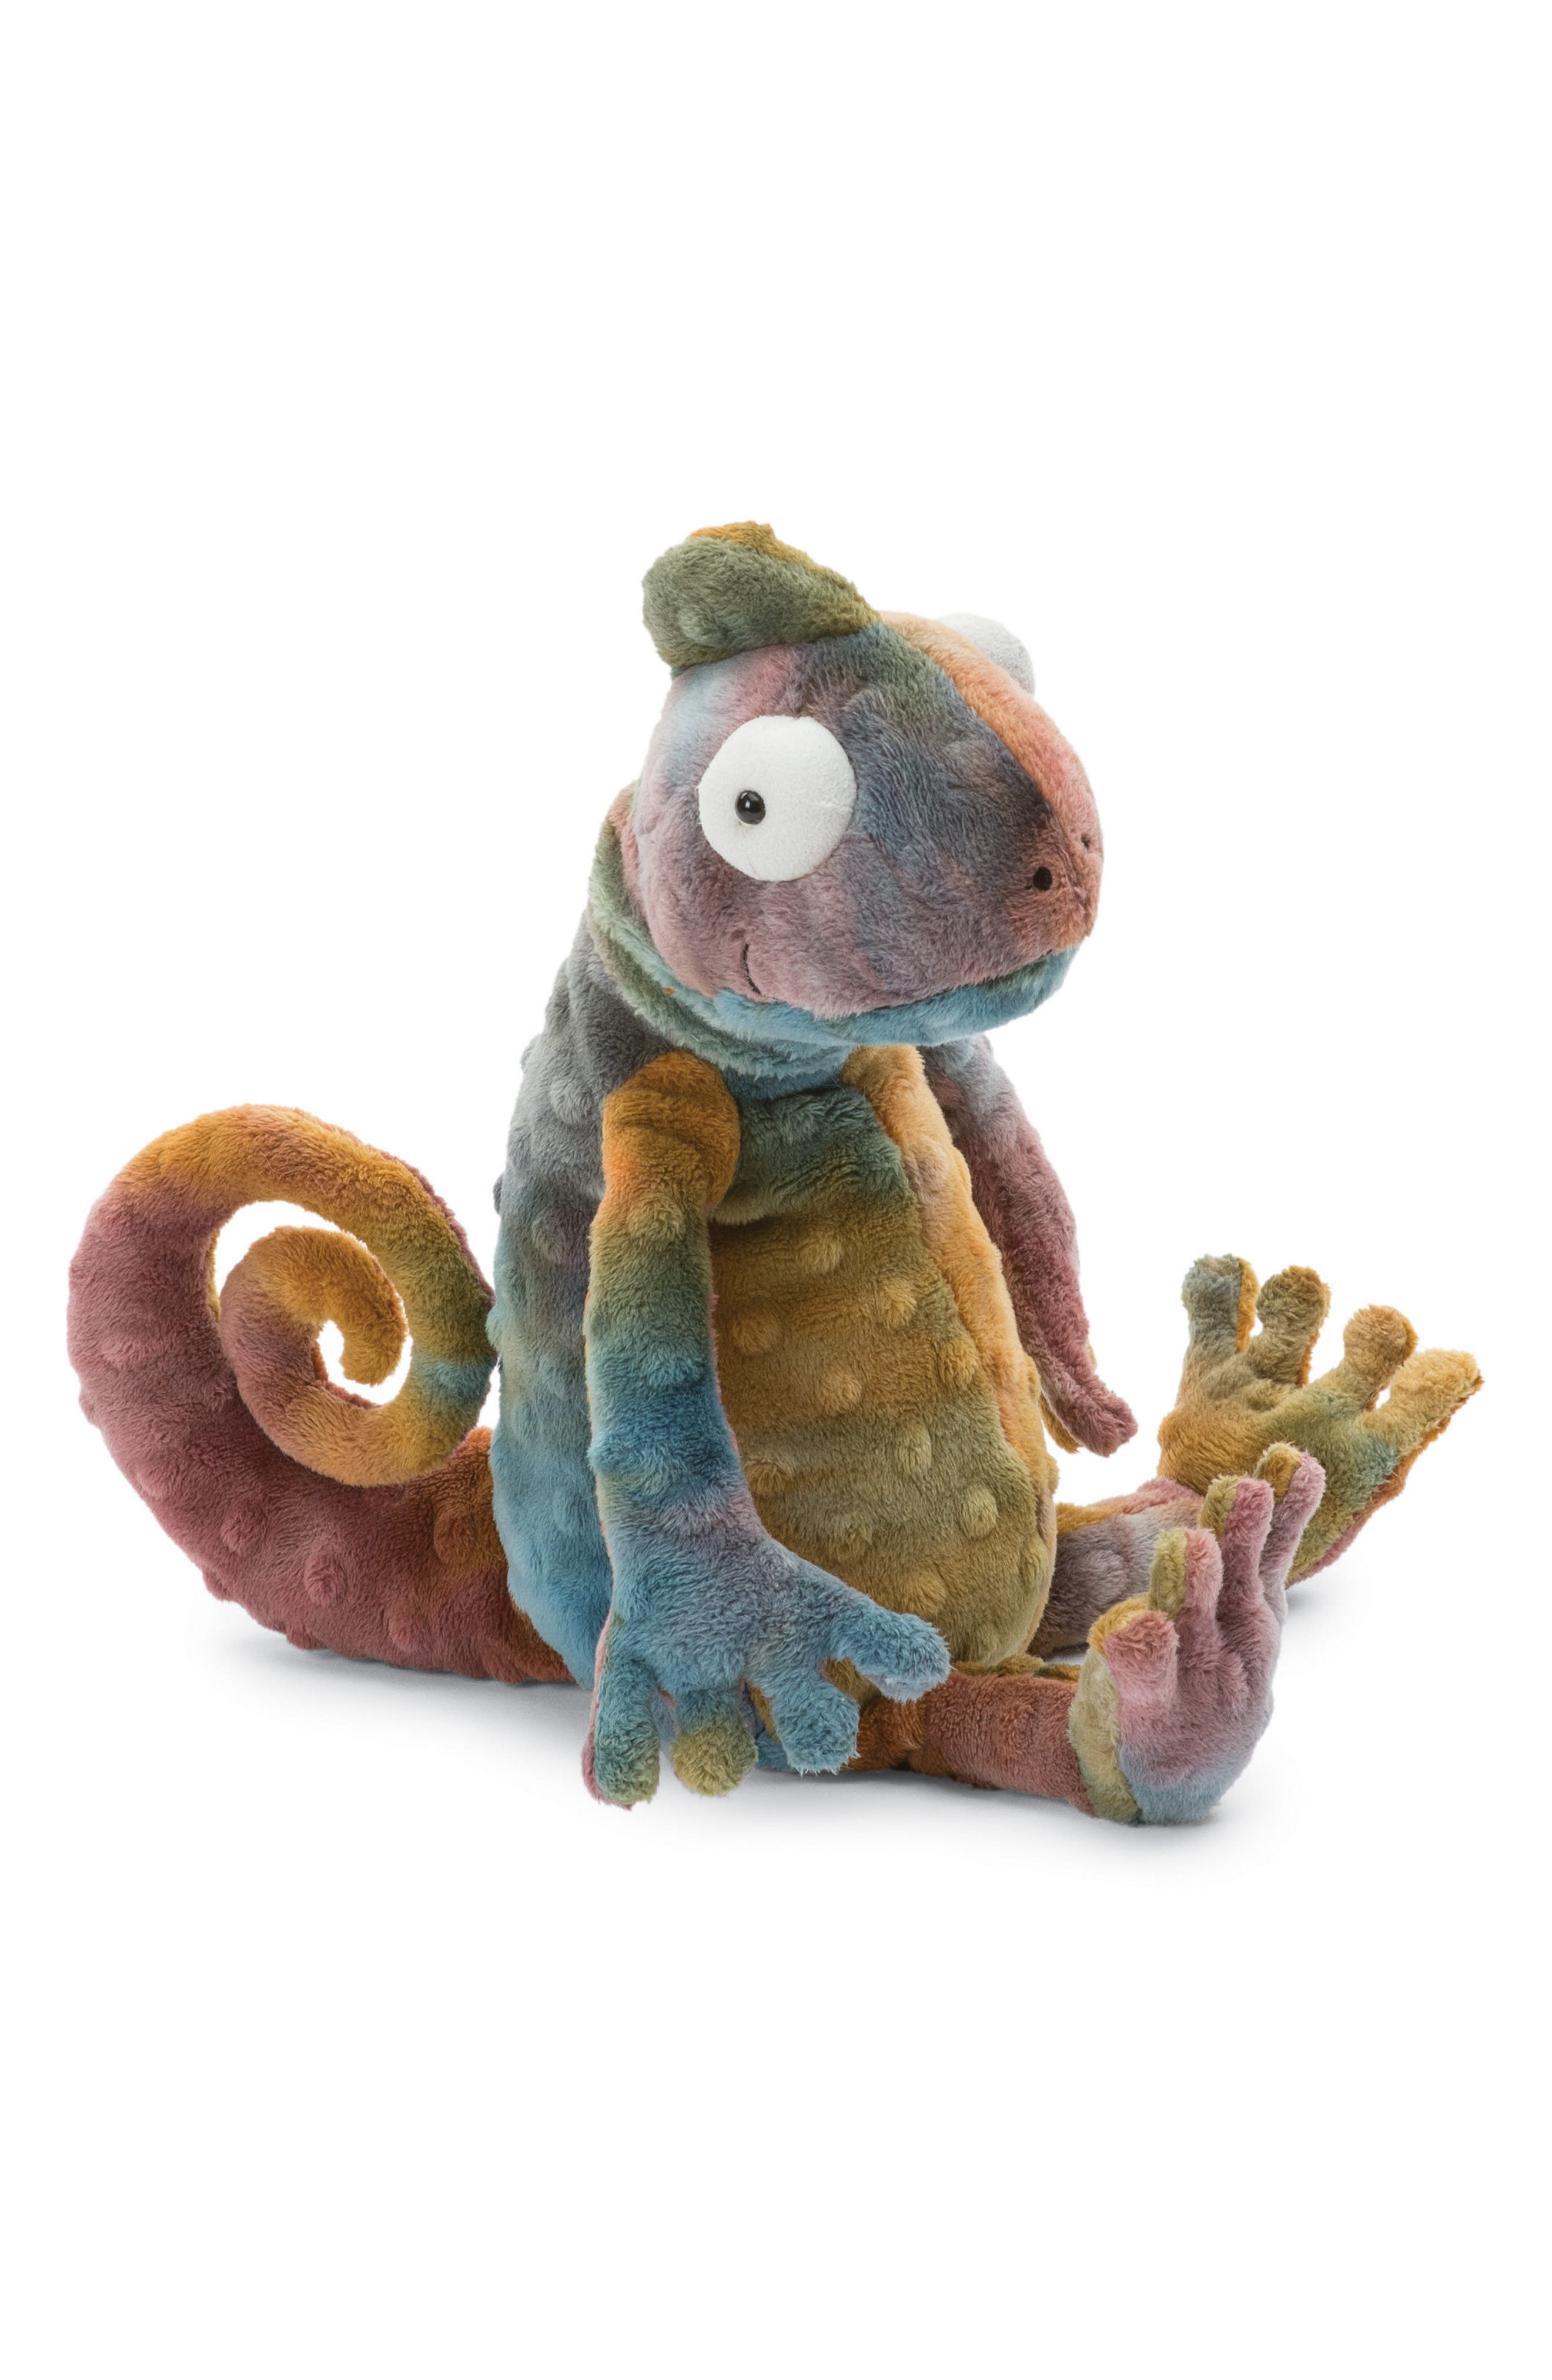 Colin Chameleon Stuffed Animal,                         Main,                         color, Multi